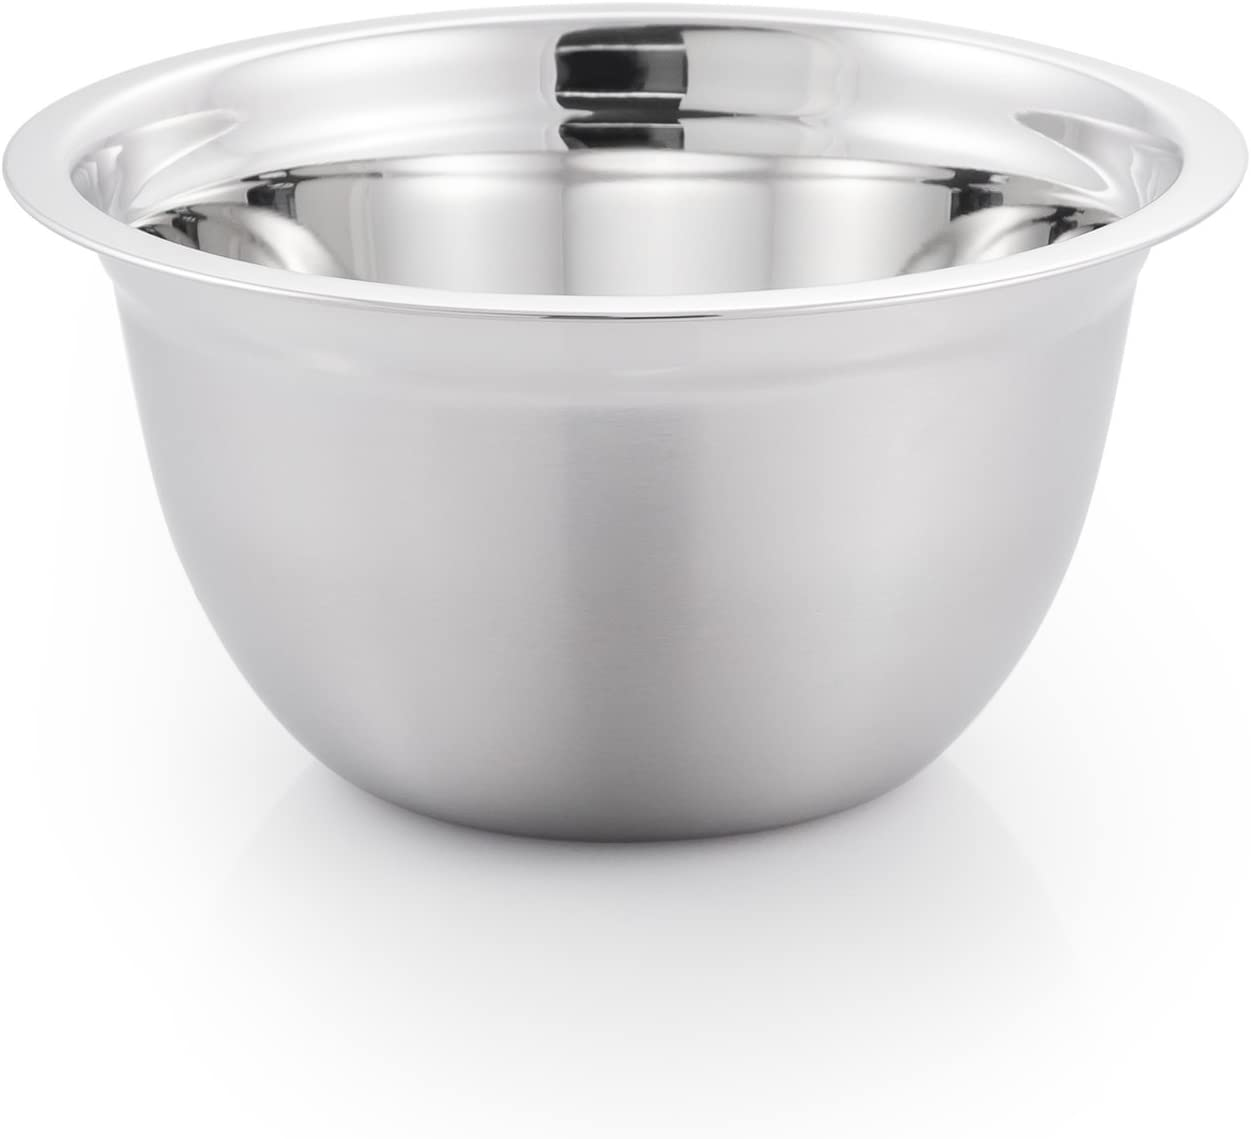 McSunley 12-Quart All Purpose Prep And Canning Bowl Stainless Steel 747